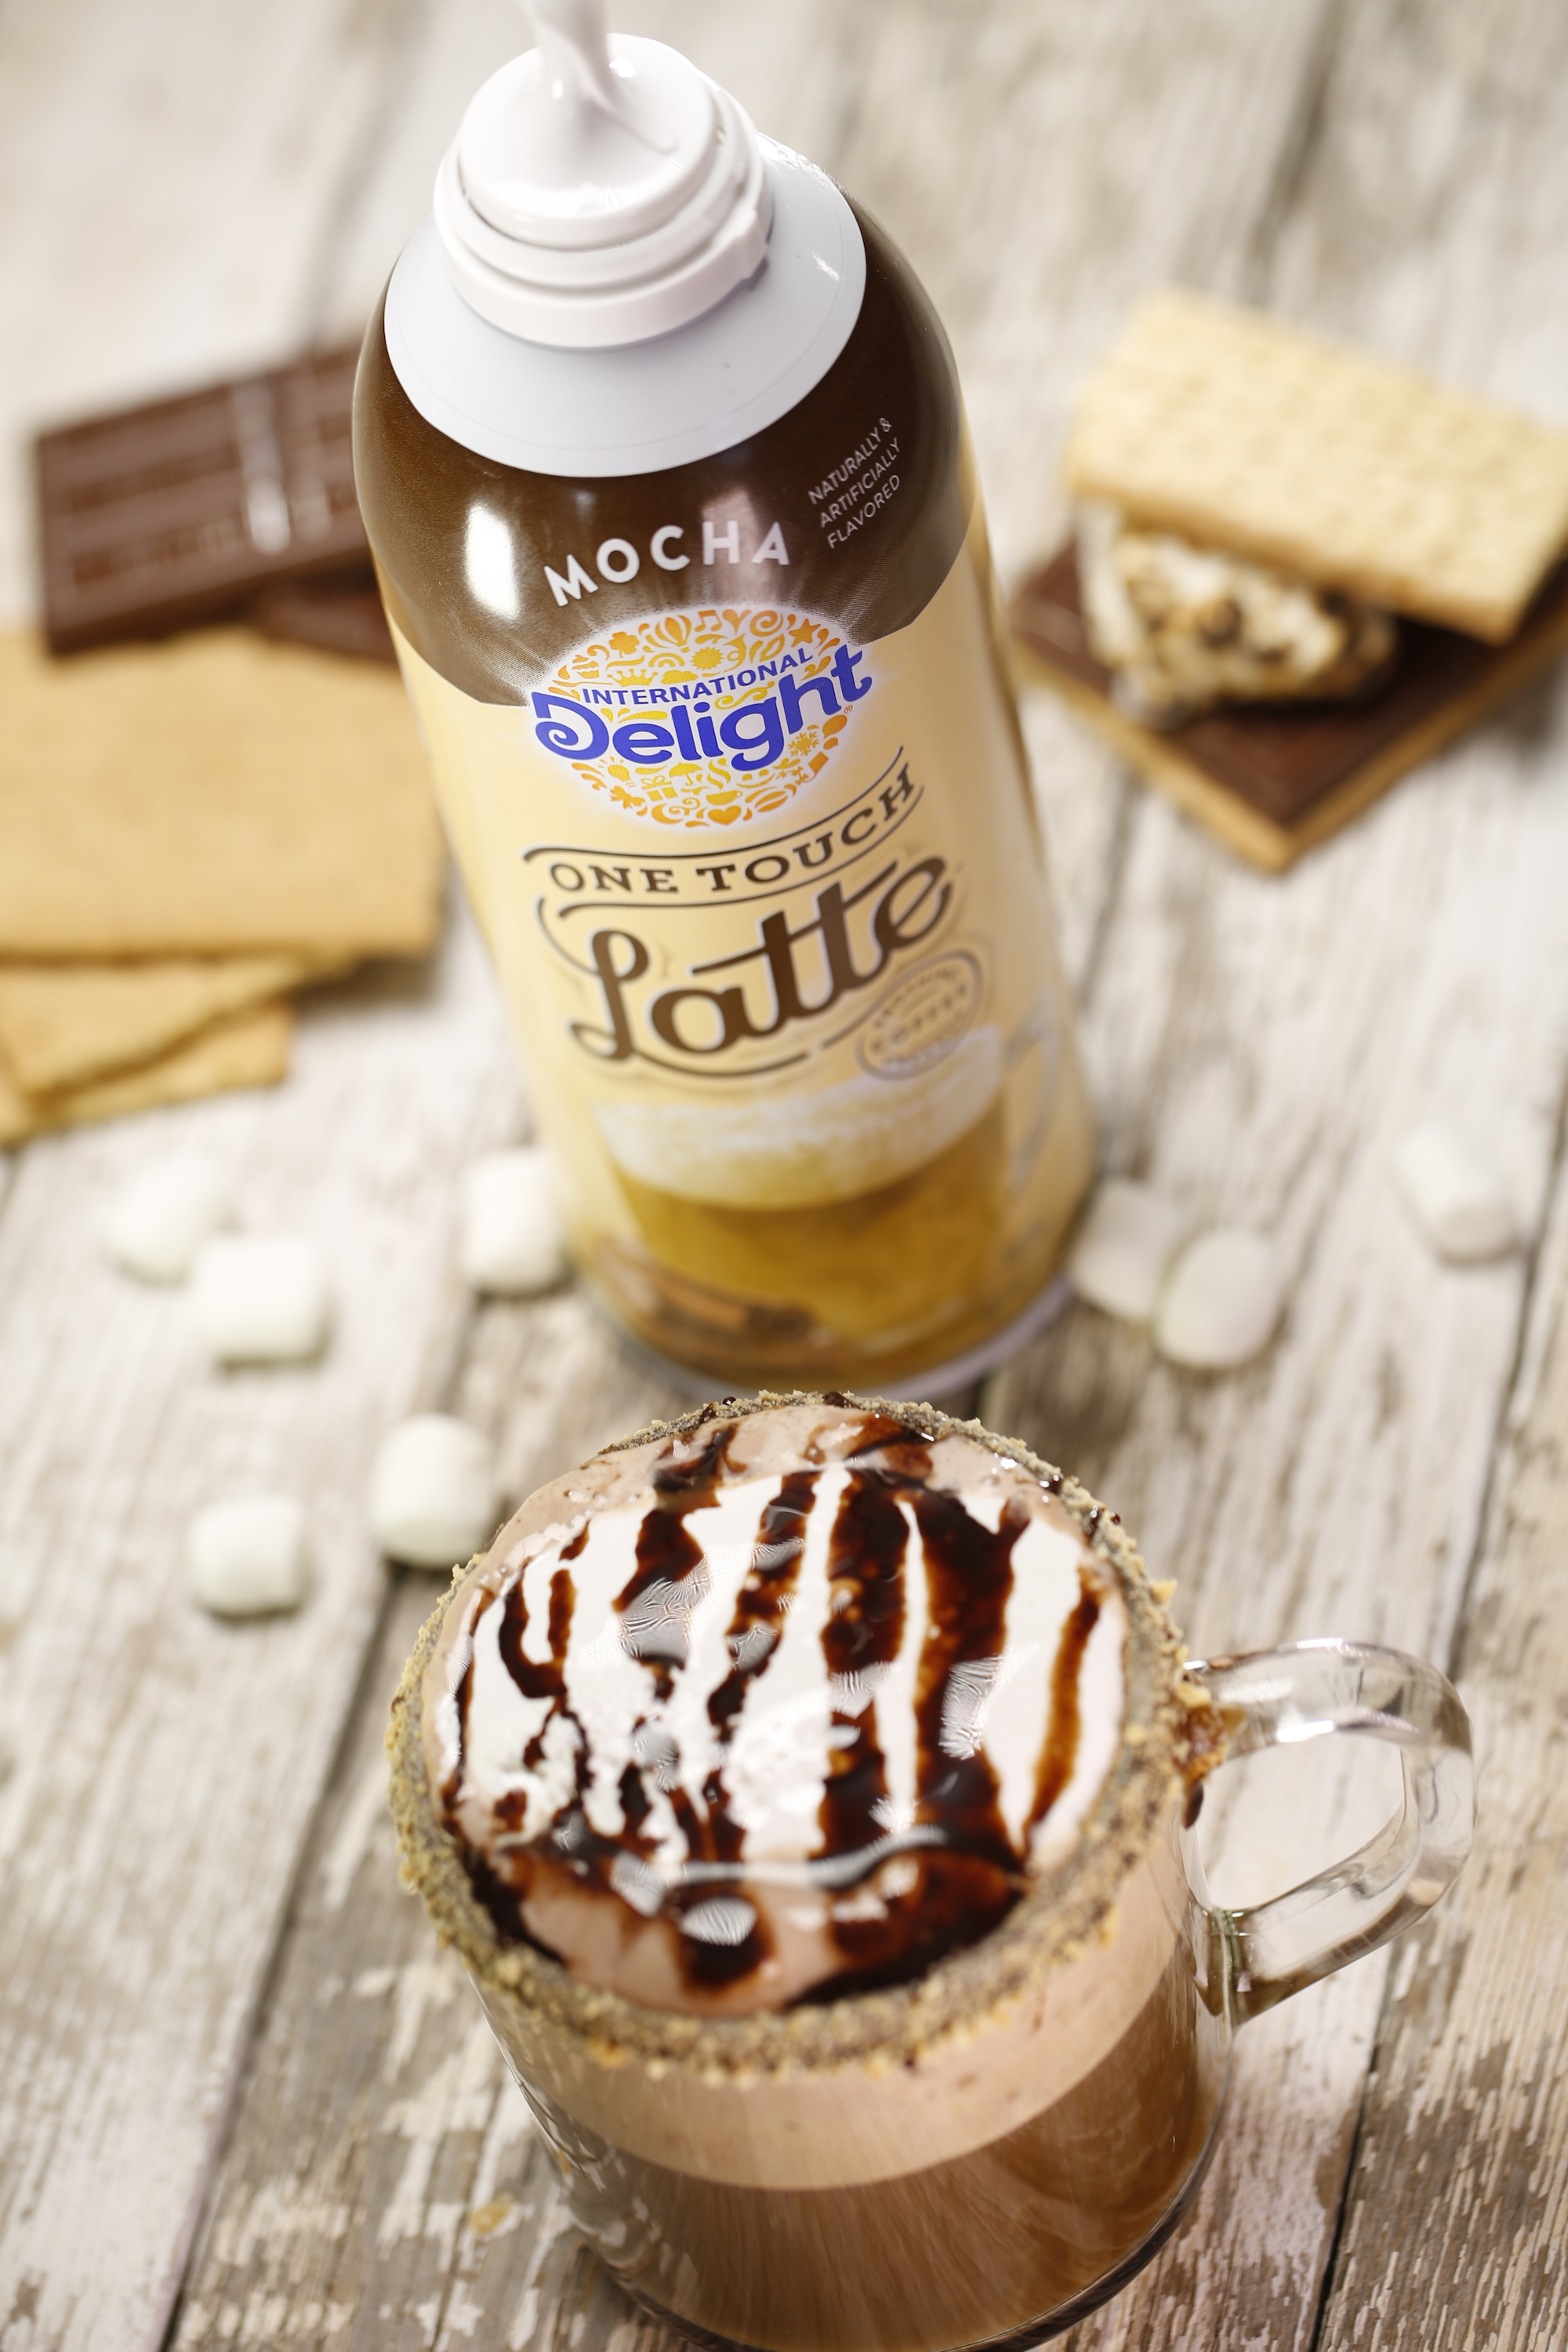 One Touch Latte - S'mores Latte